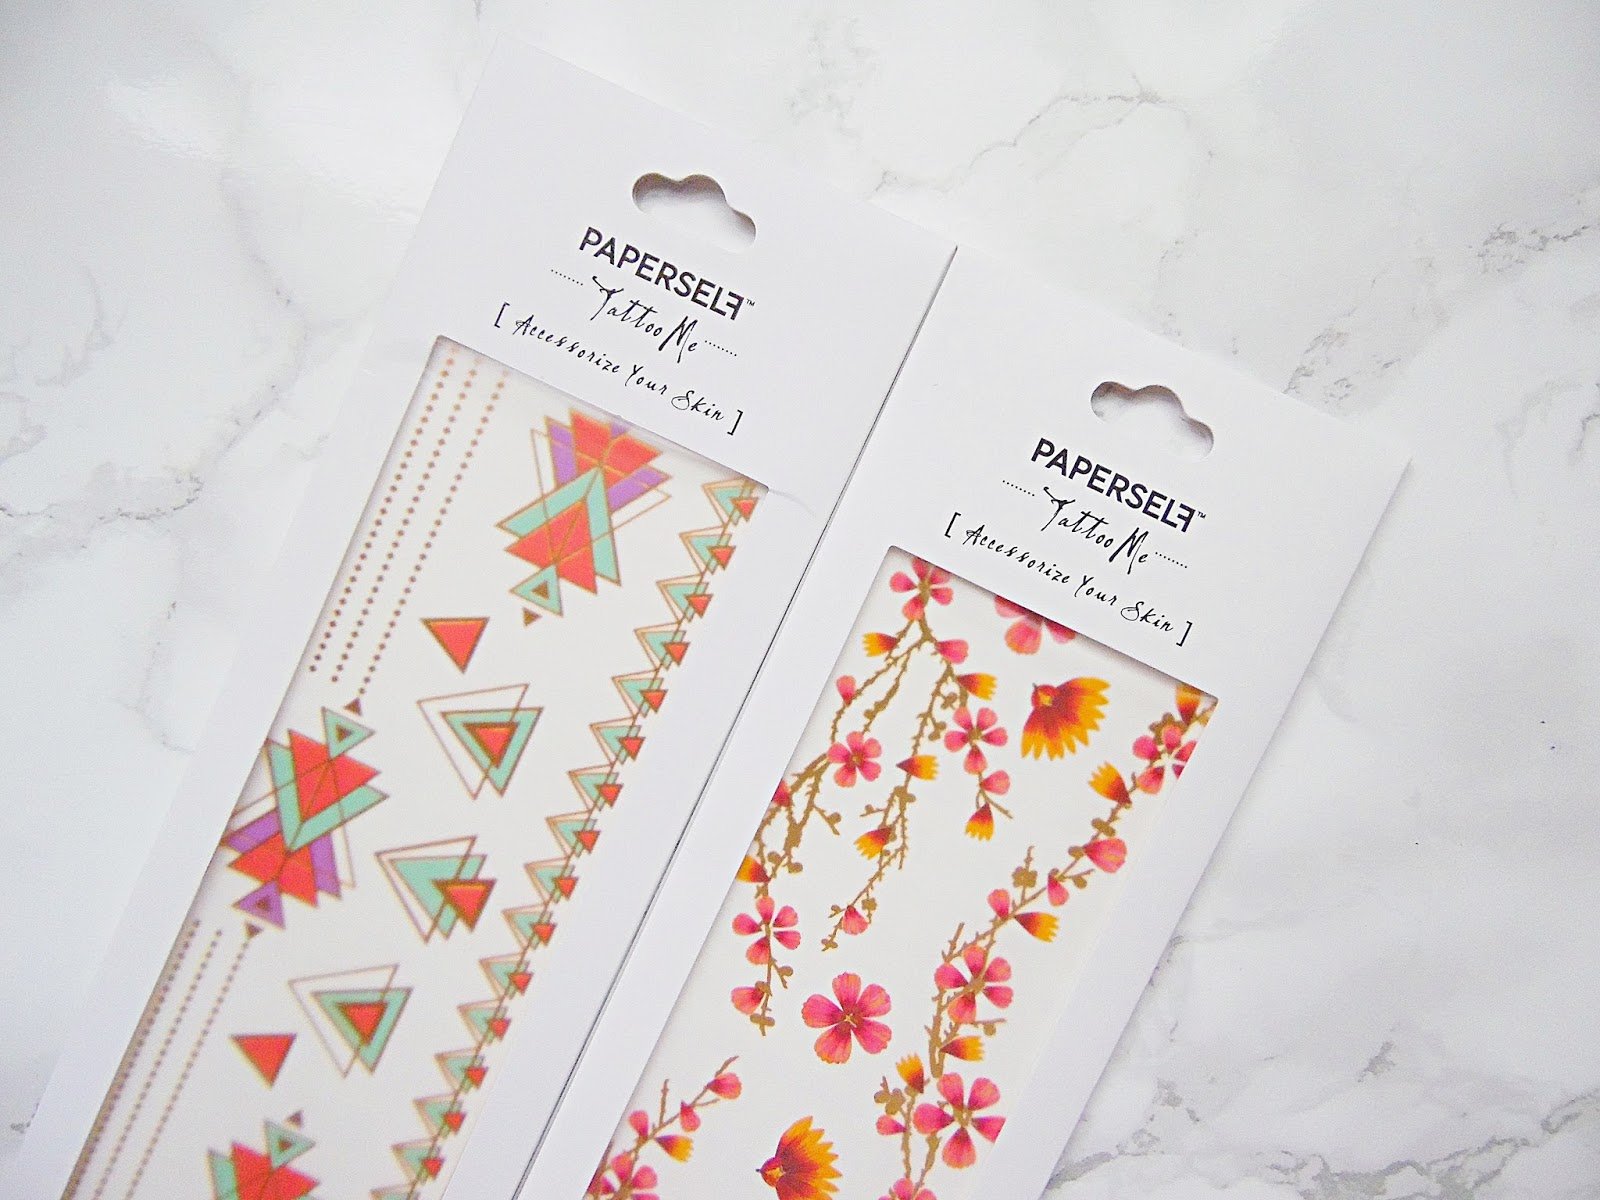 Paperself Tattoos & Paper Lashes